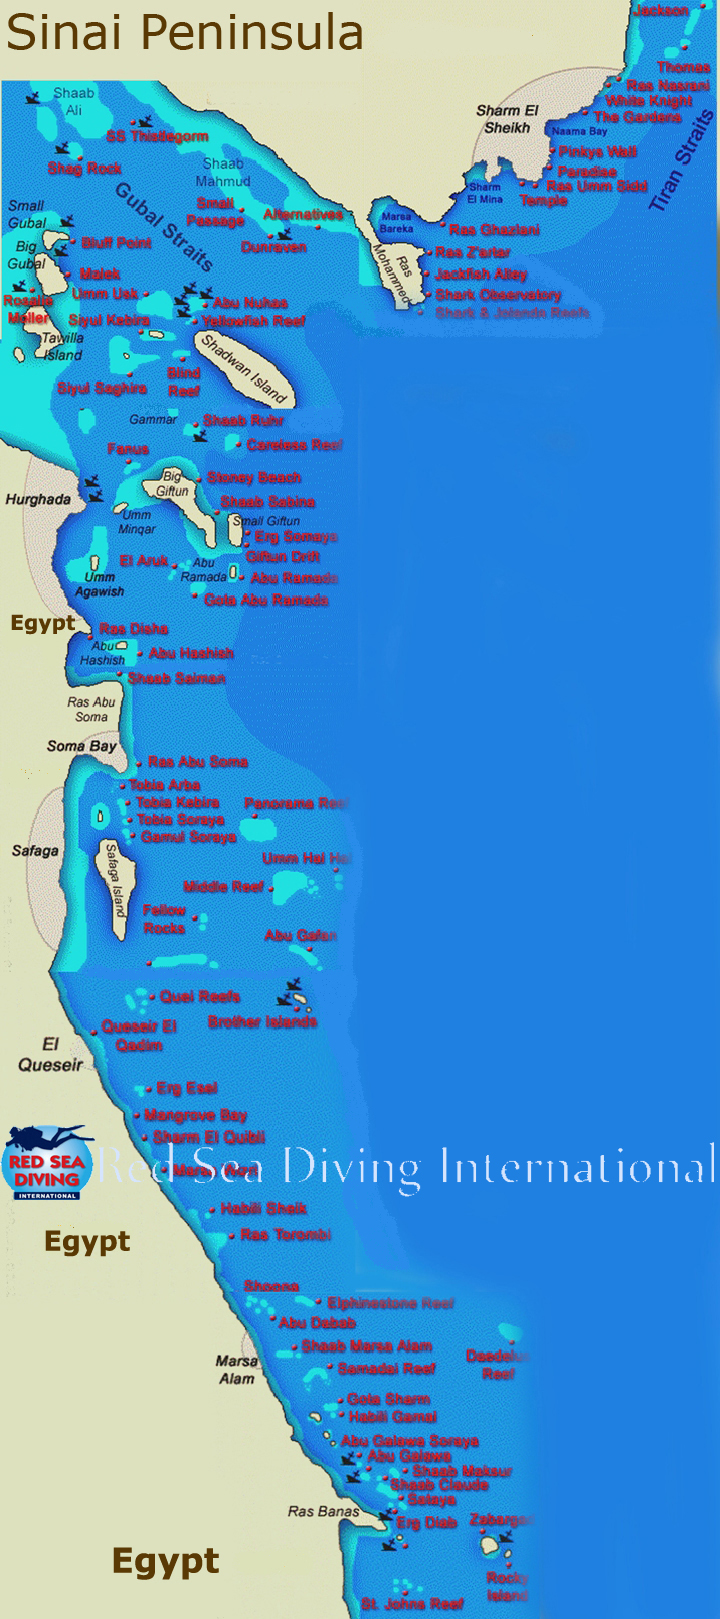 Red Sea Liveaboard<br>Diving Safaris - <br>All Cruise Routes